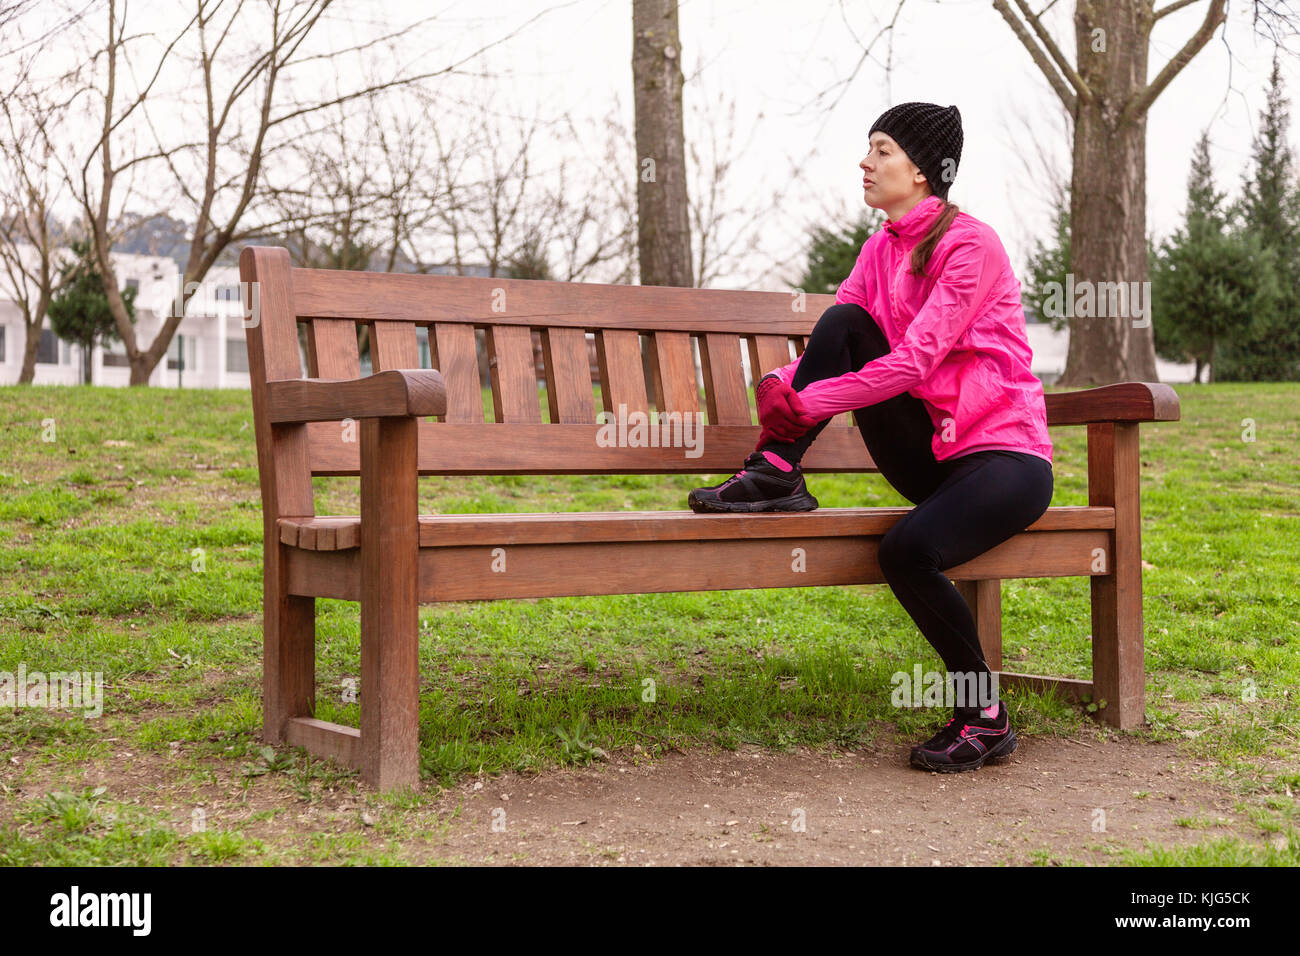 Female athlete tired or depressed resting on a bench on a cold winter day on the training track of an urban park. - Stock Image